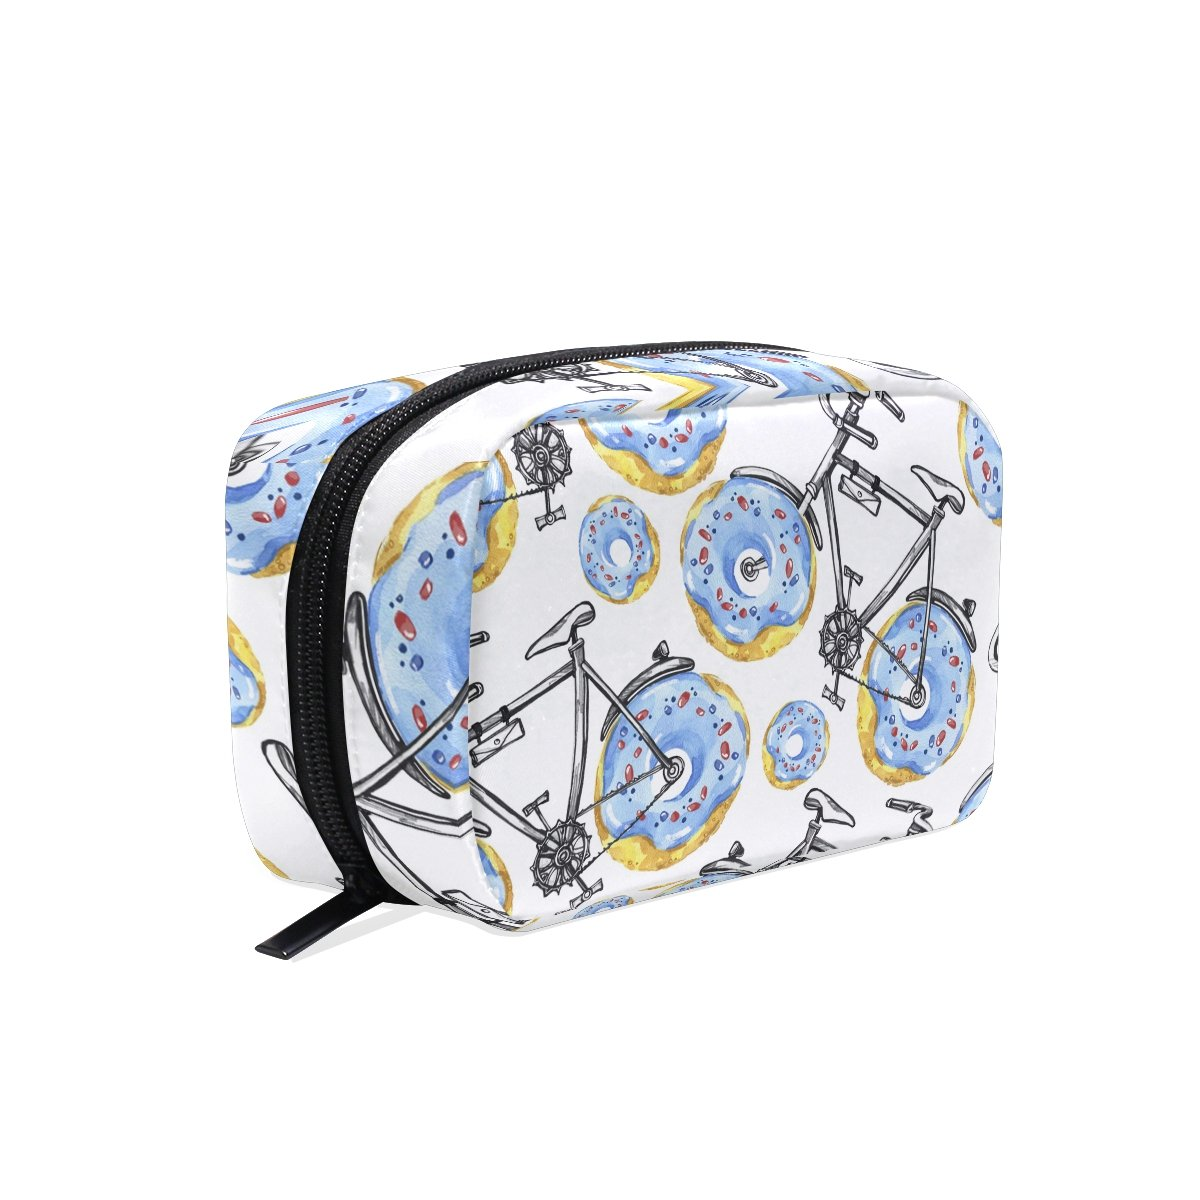 Makeup Bag Toiletry Bag Cosmetic Bags Bicycles With Donuts Wheels Storage Bag for Women Skincare Cosmetic Pouch